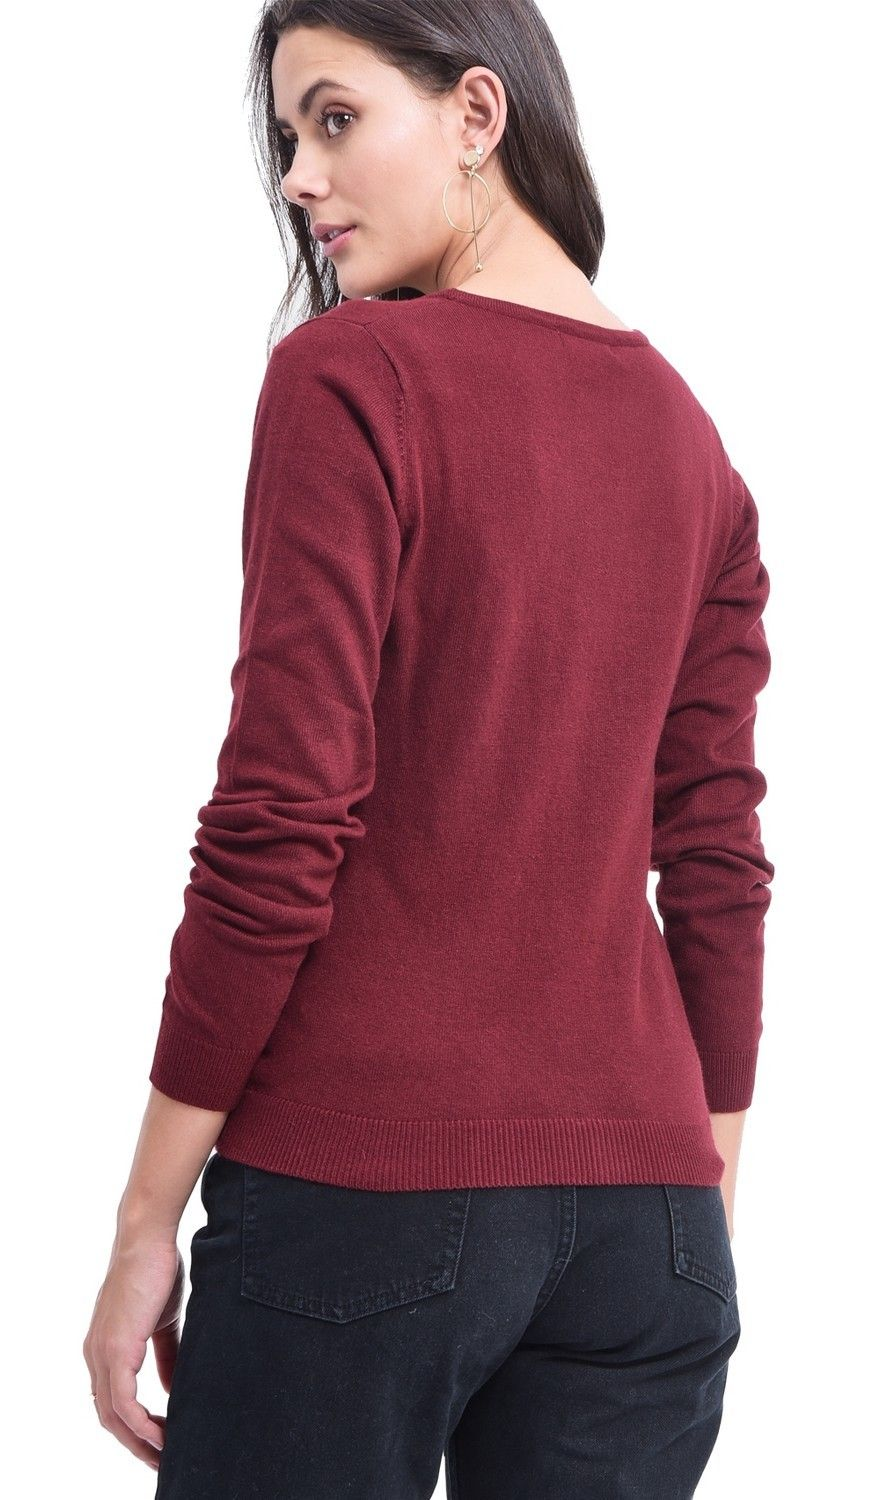 Assuili V-neck Buttoned Cardigan in Maroon